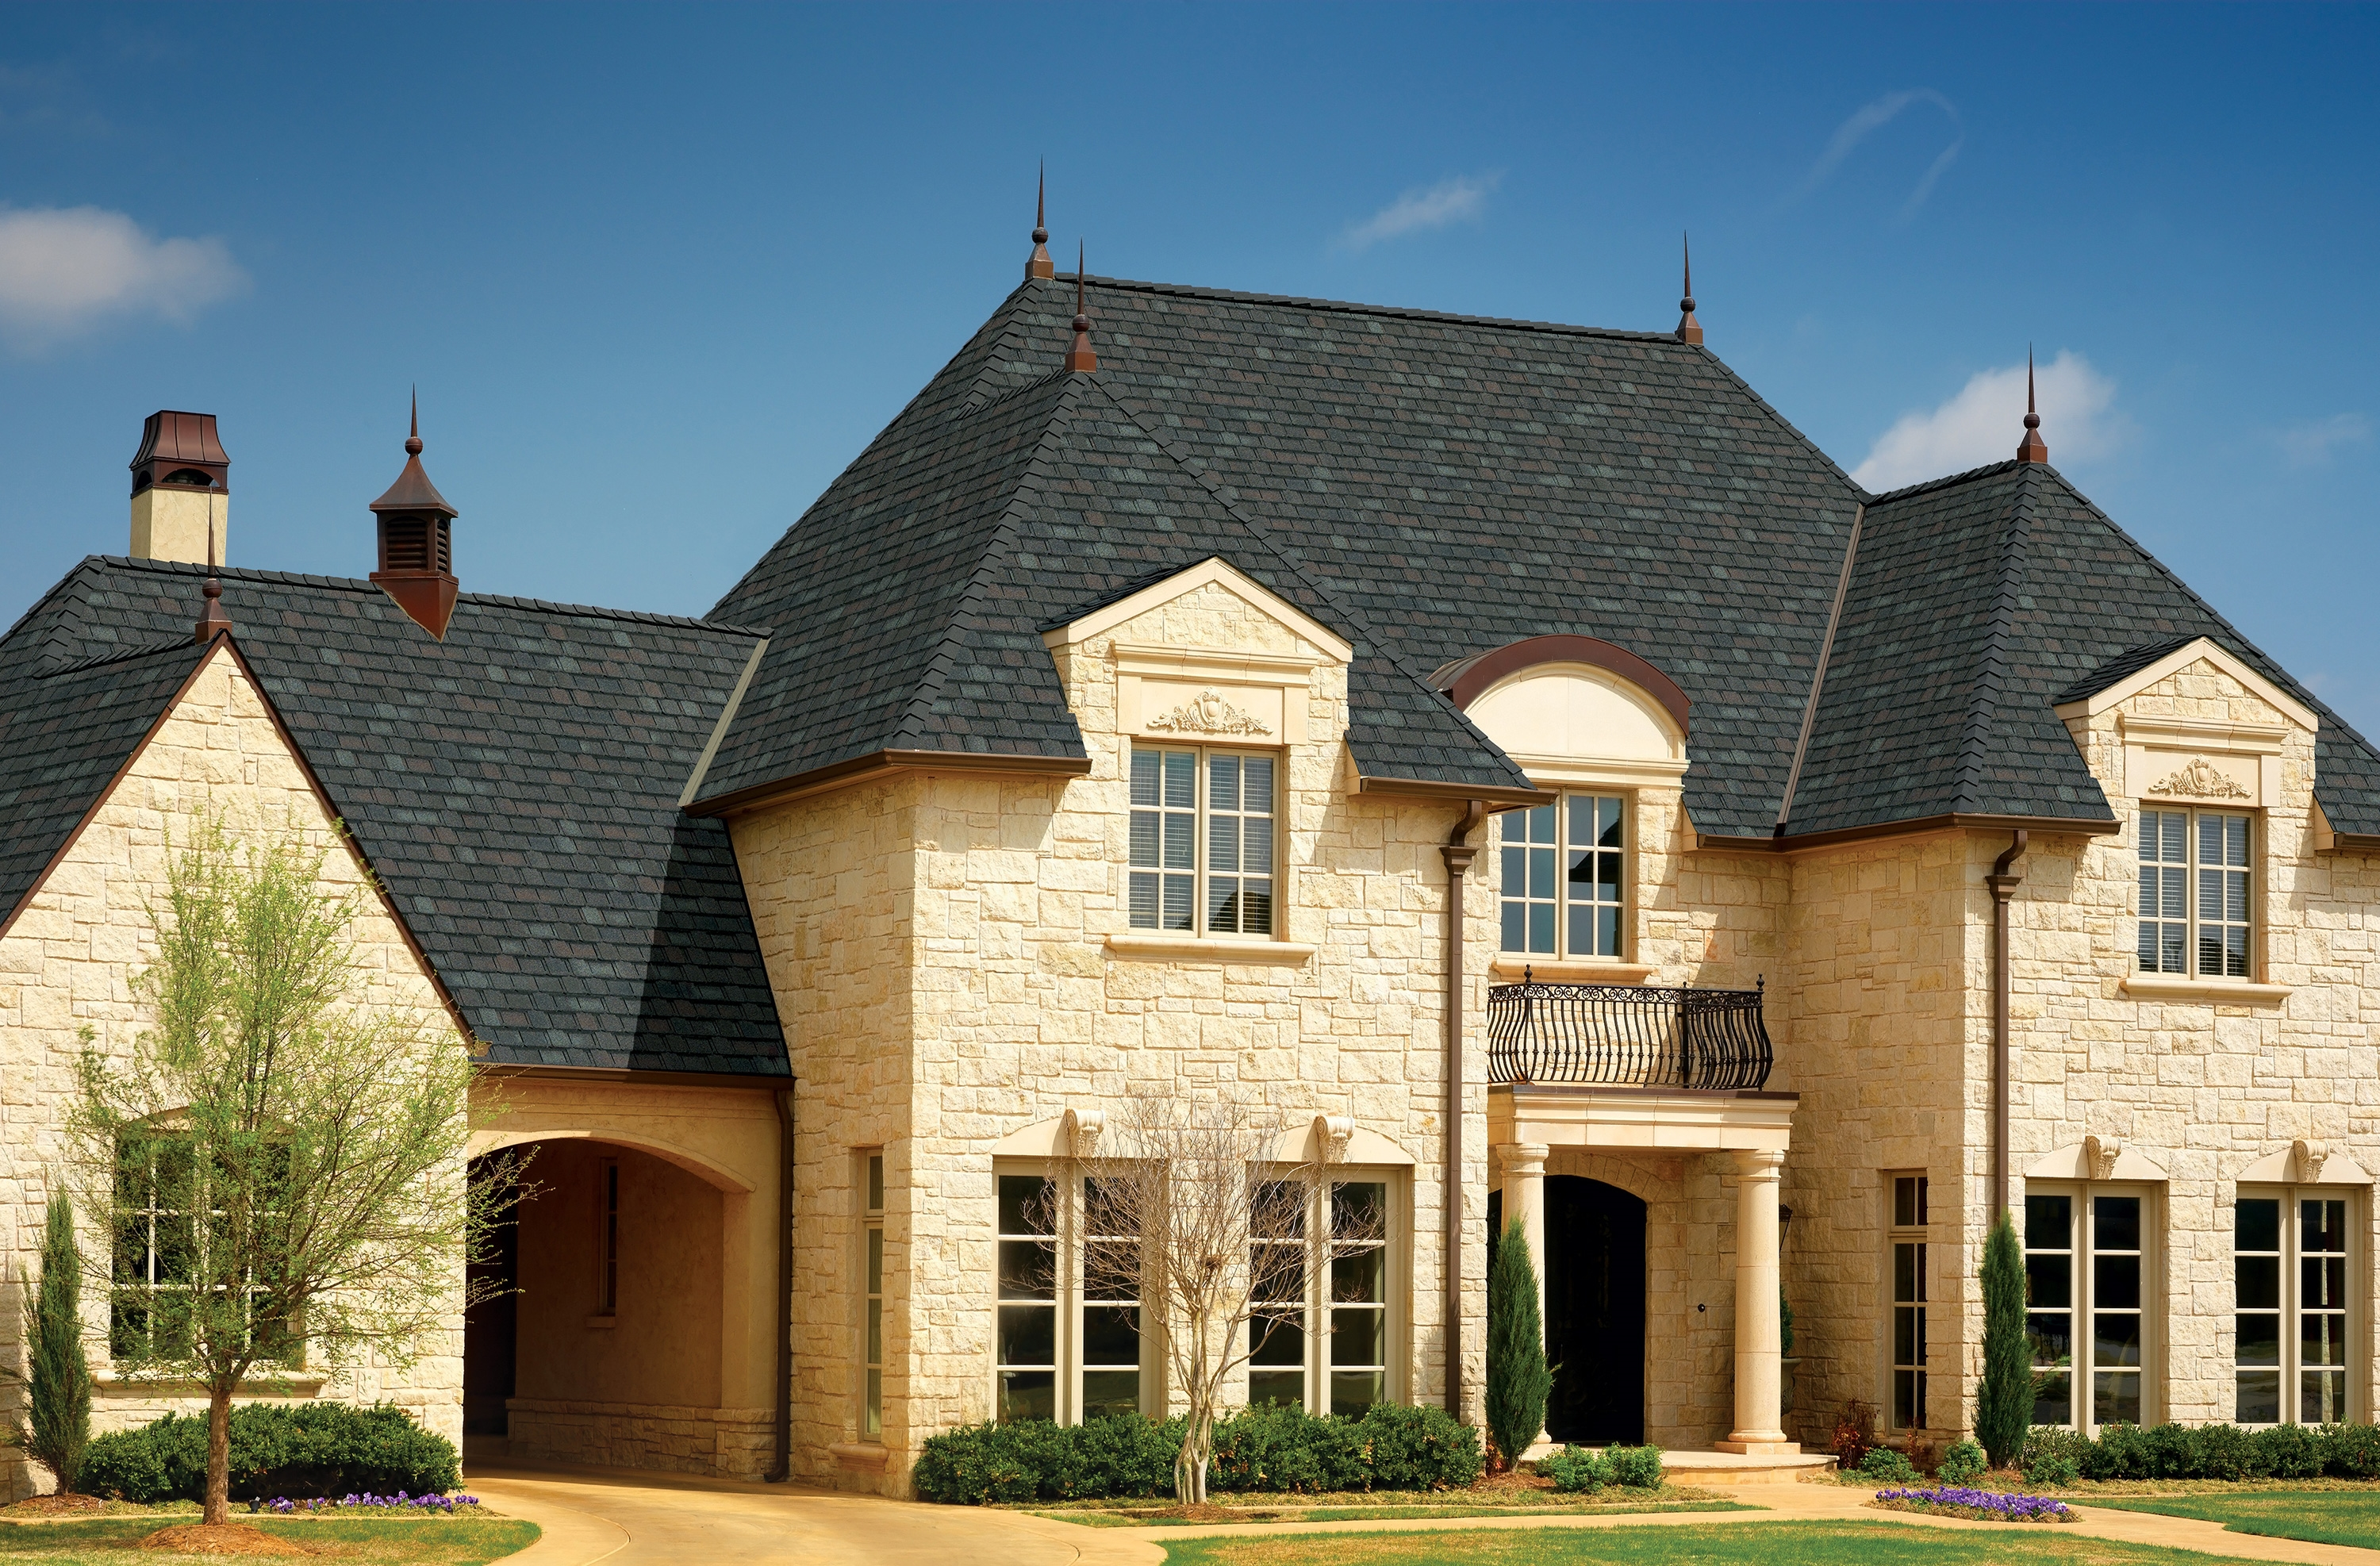 Don 39 t judge a roof by its shingles roofing above all for House roofing